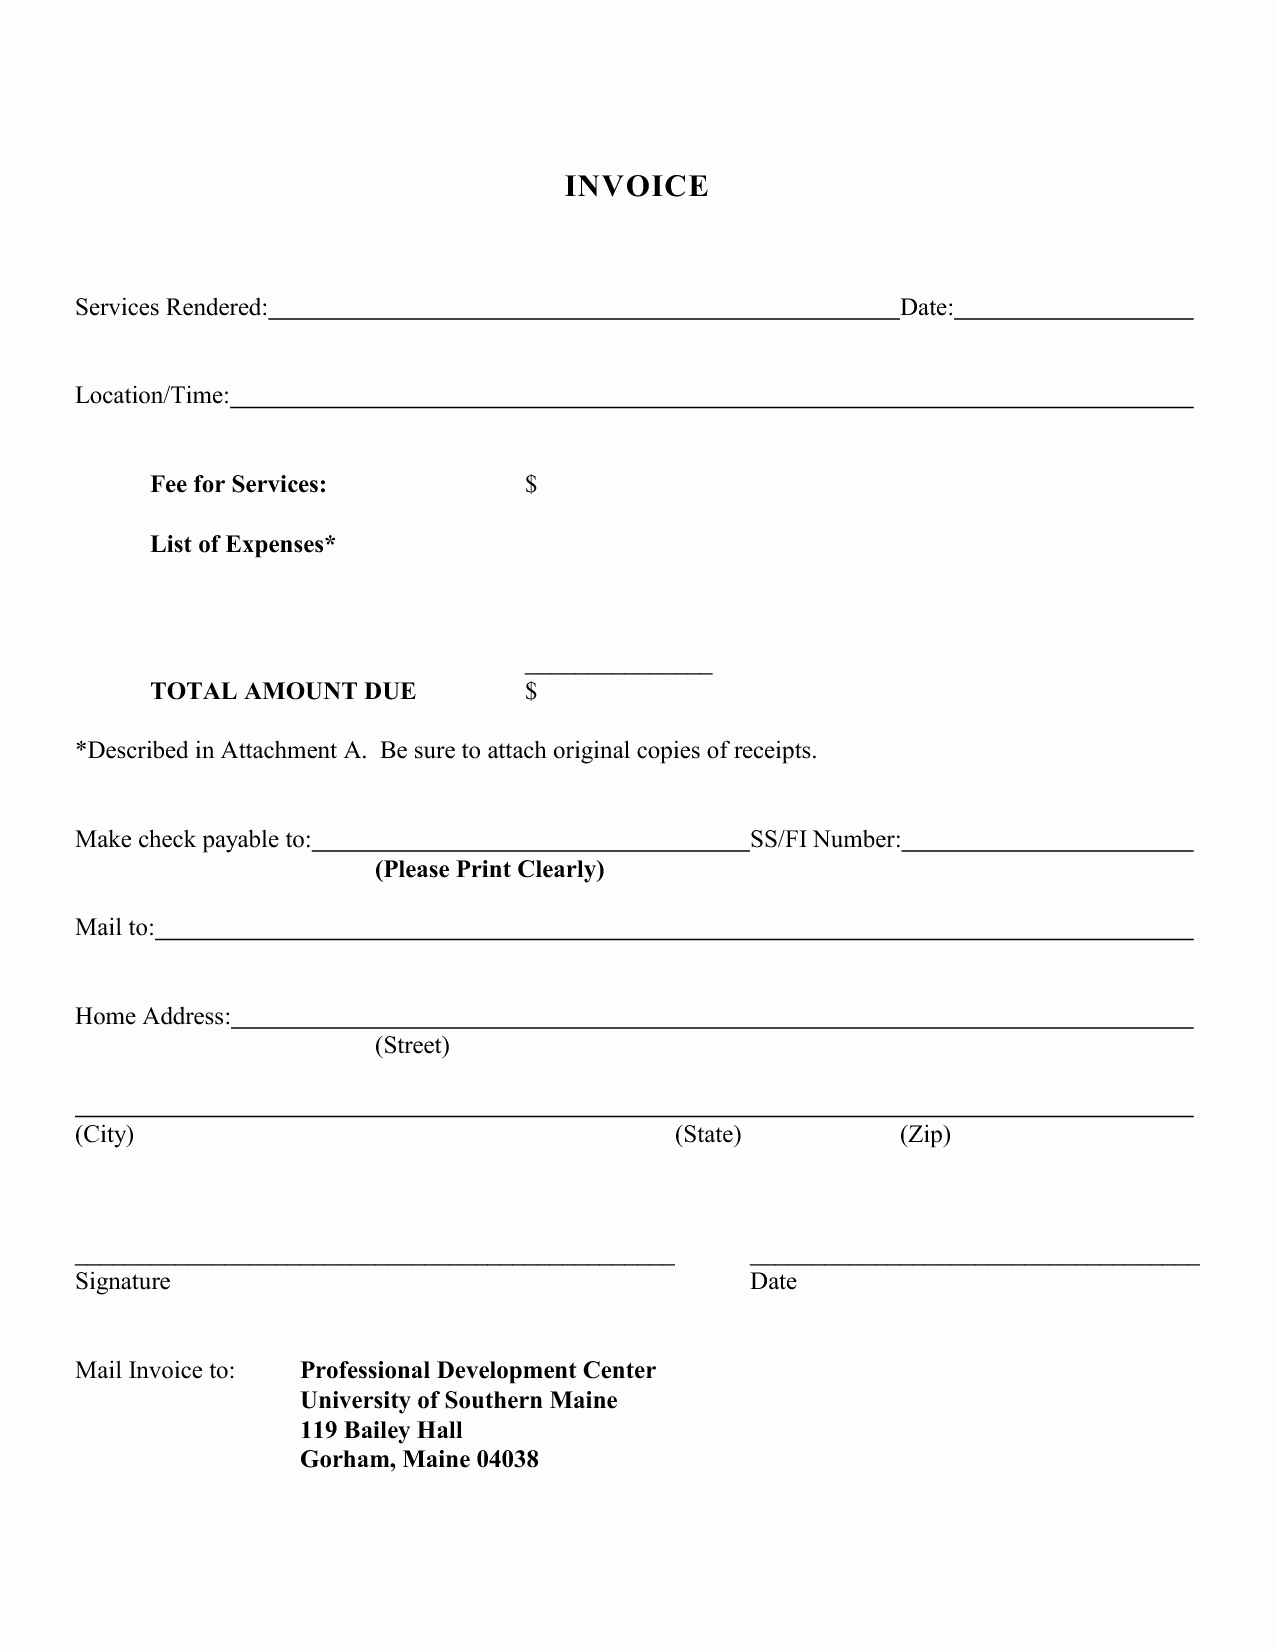 Invoice for Services Rendered Template Luxury Receipt Template for Services Rendered – Printable Receipt